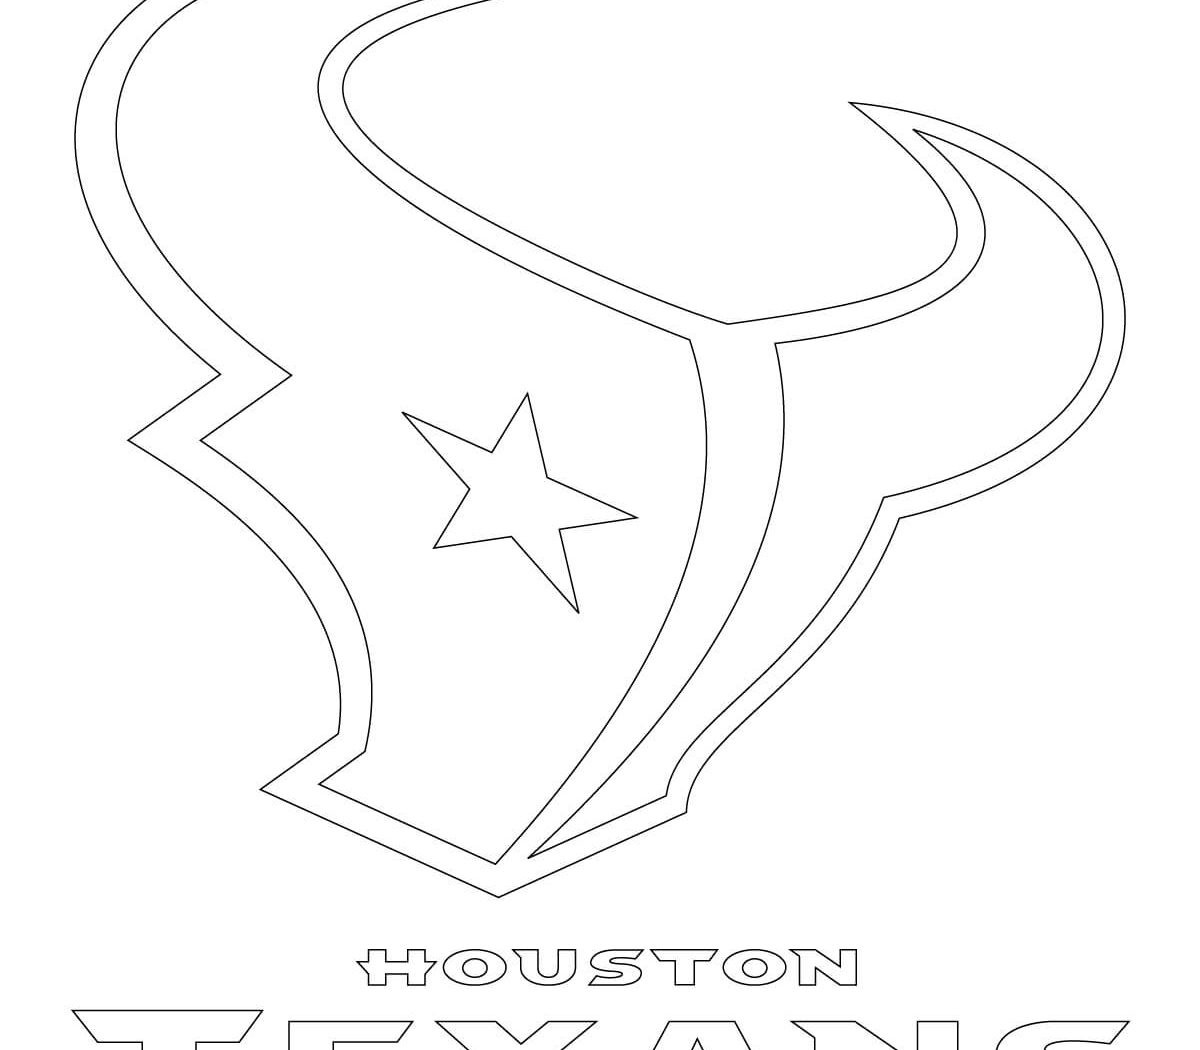 1200x1050 Houston Texans Coloring Pages